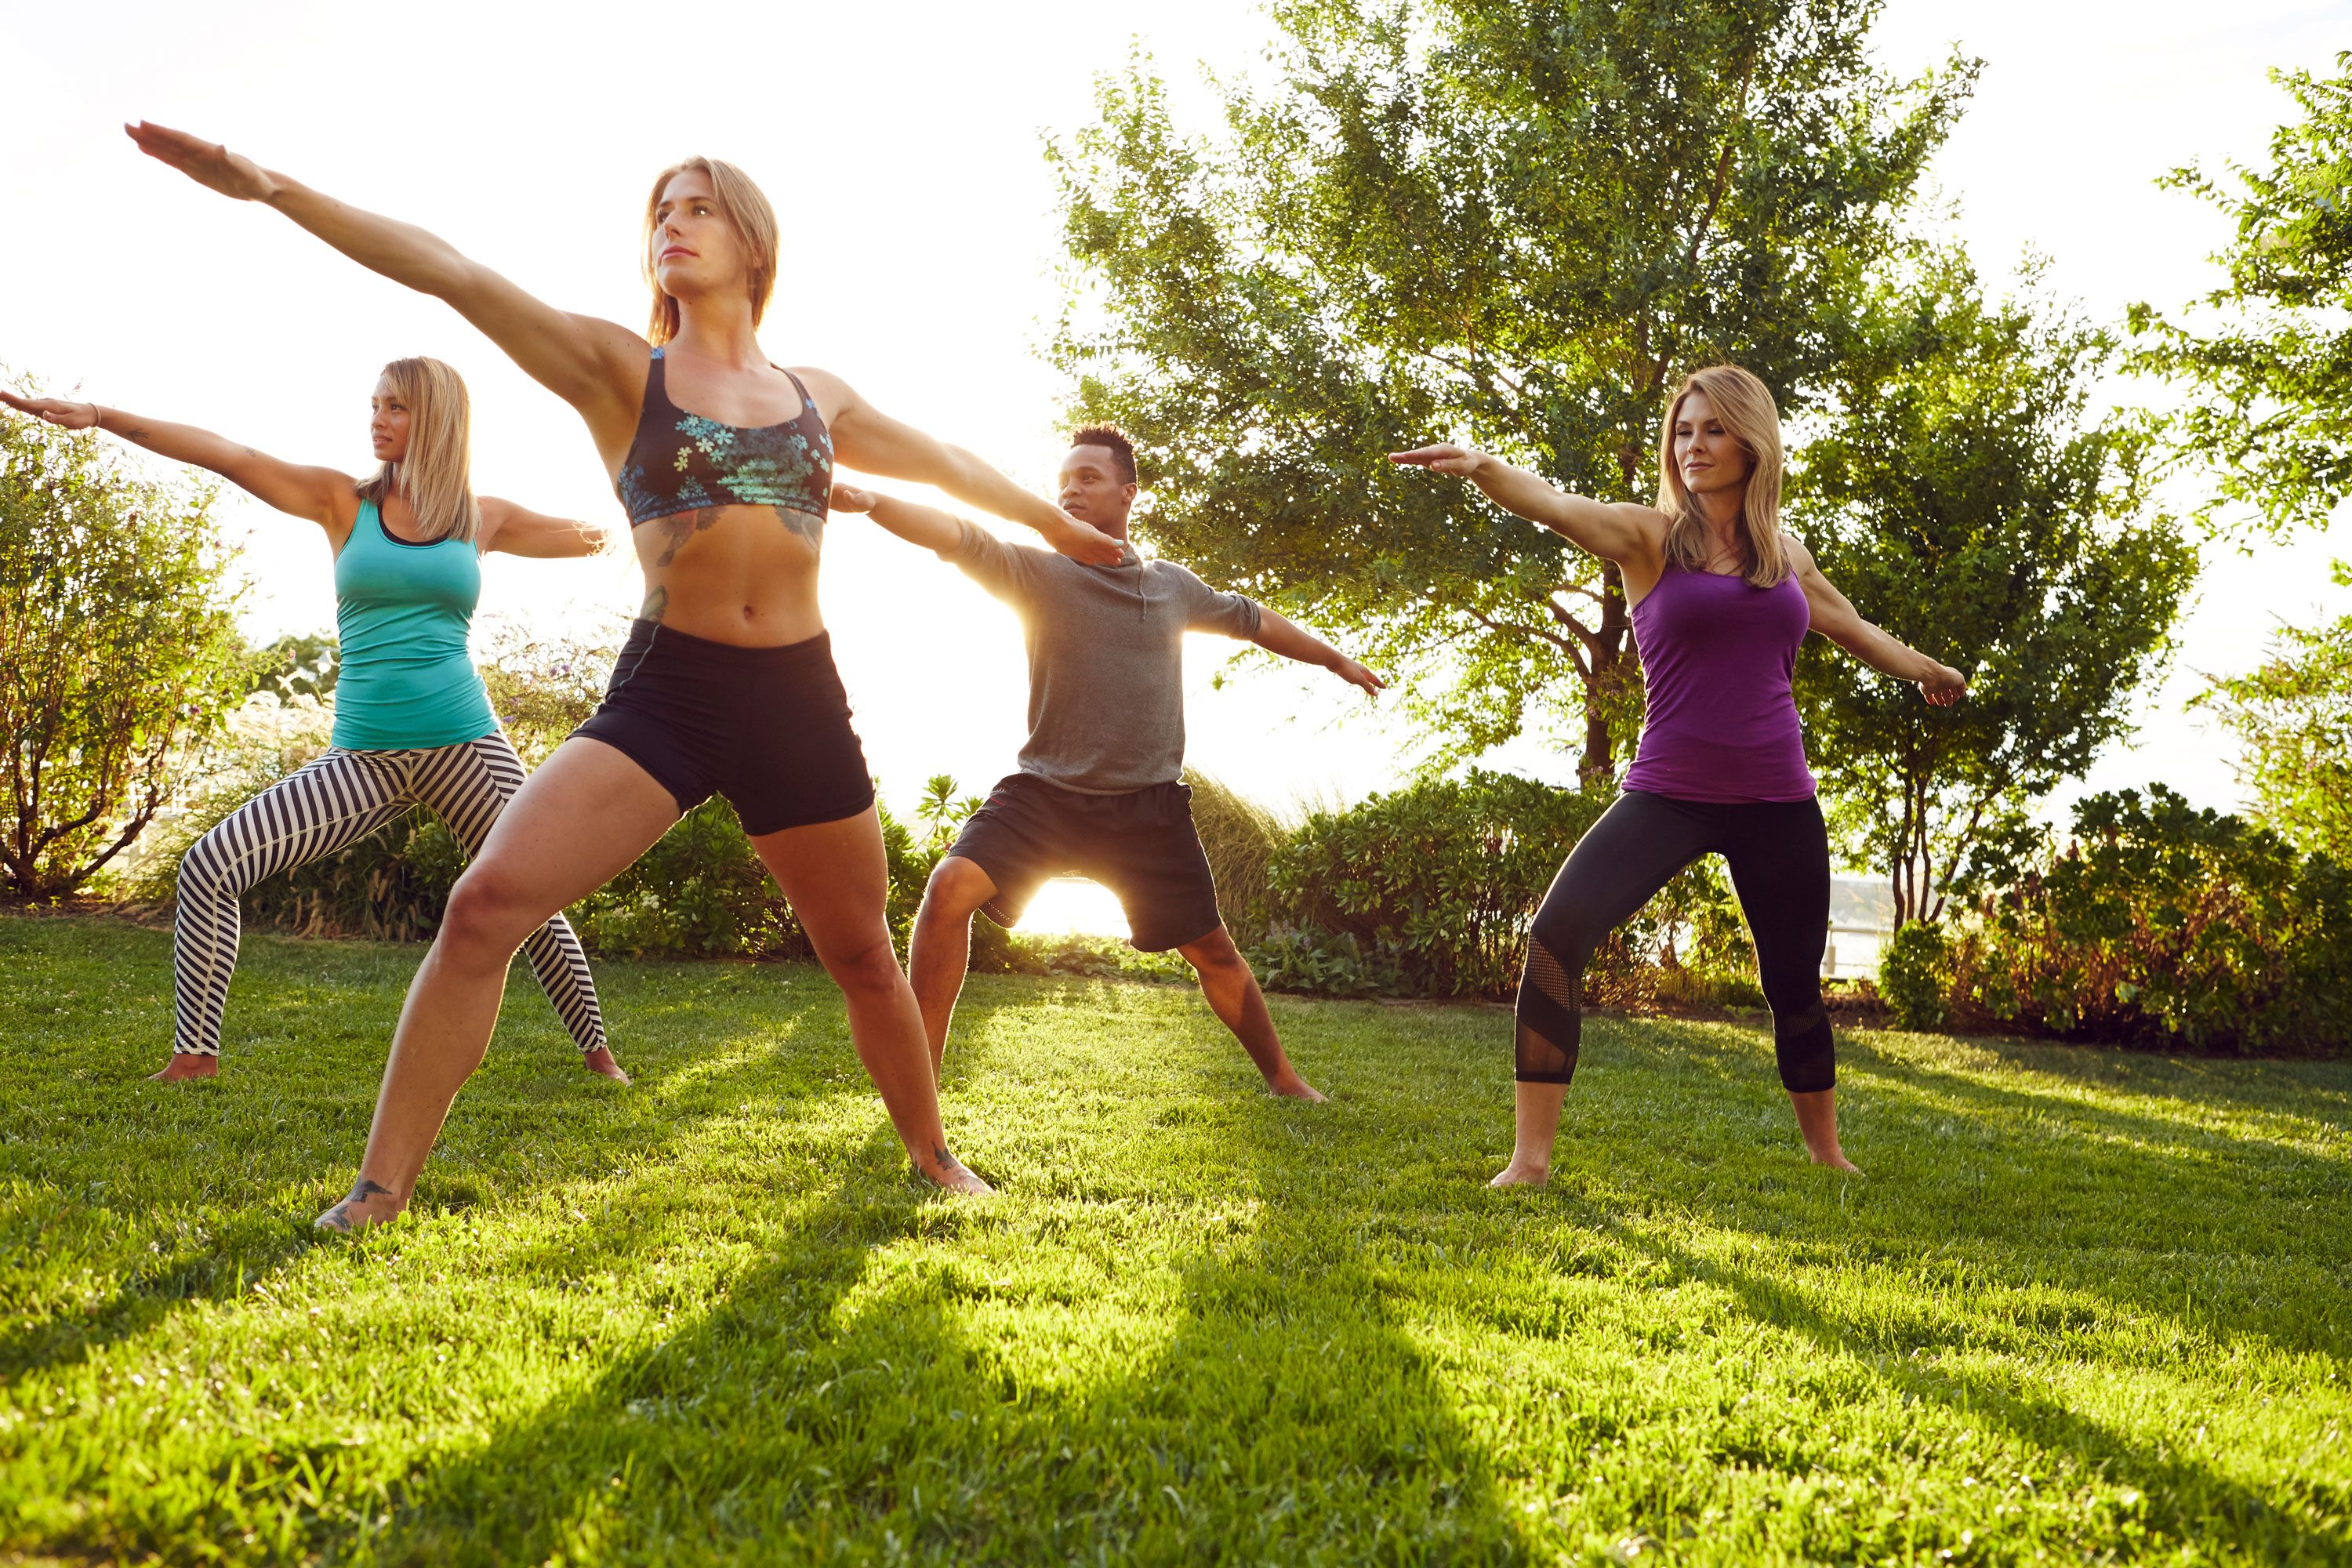 How to plan an outdoor workout